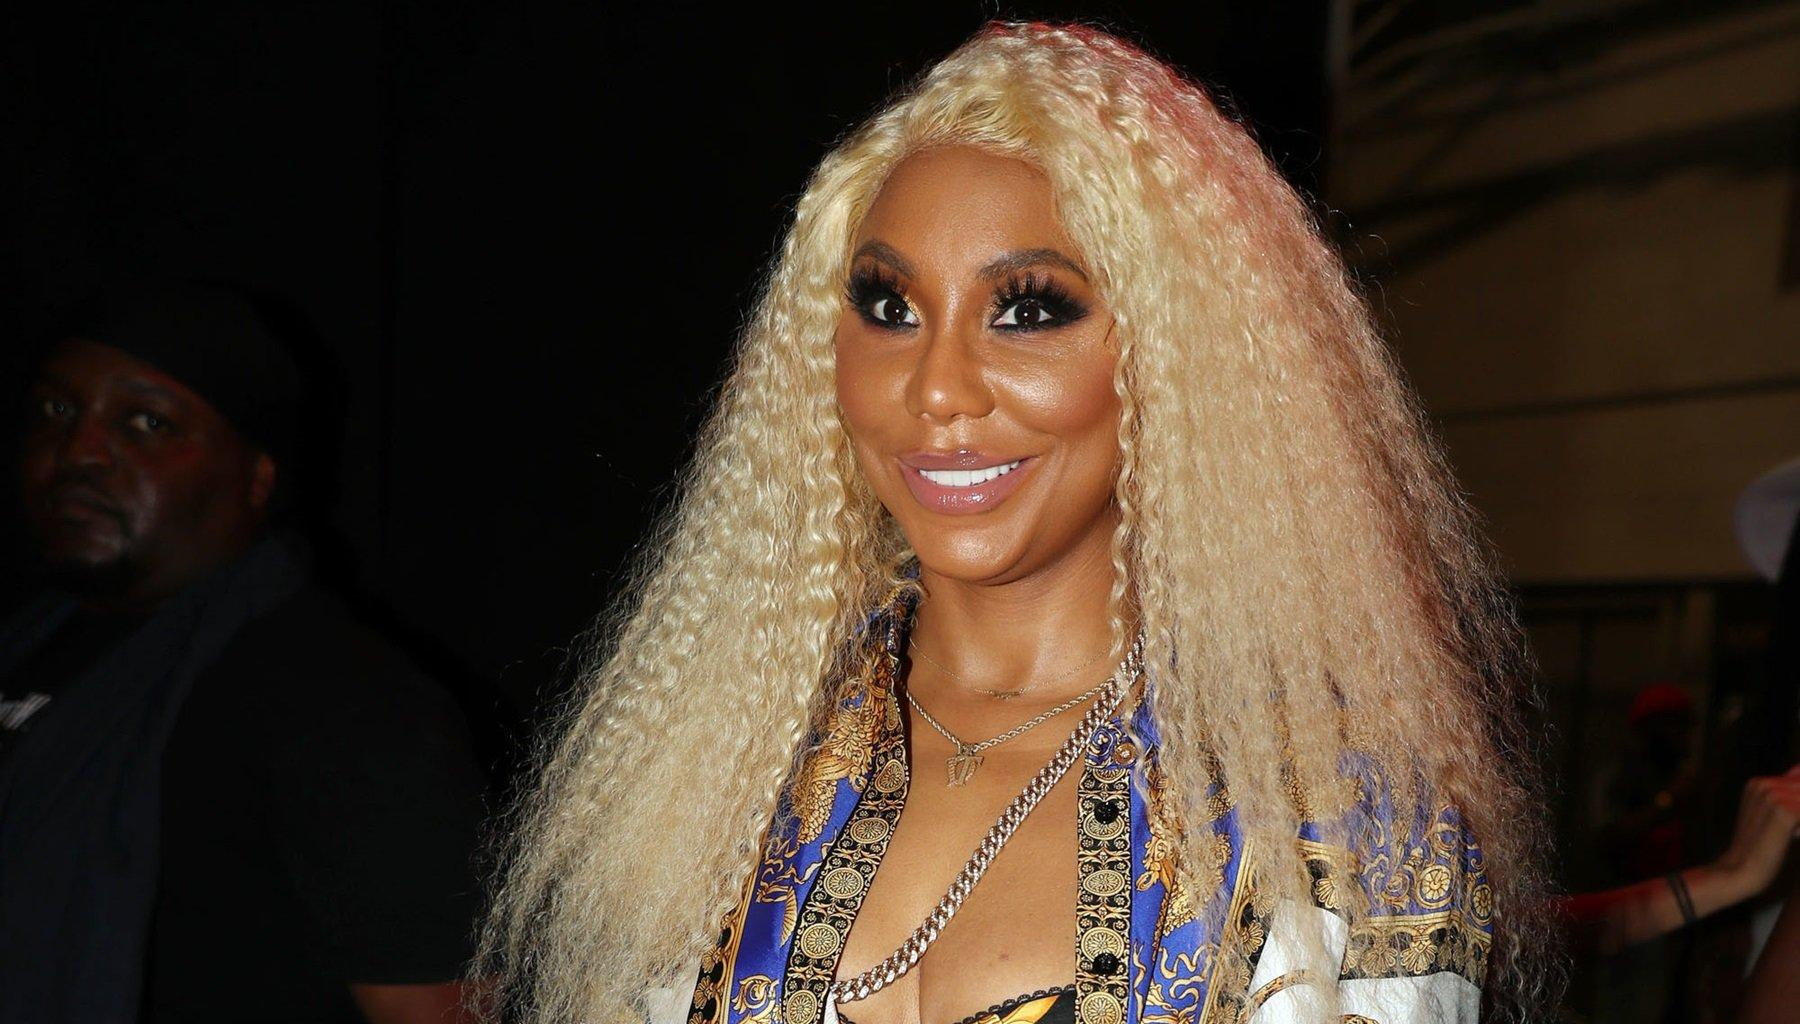 Tamar Braxton's Latest Video In Which She Drinks Henny Has Fans In Awe